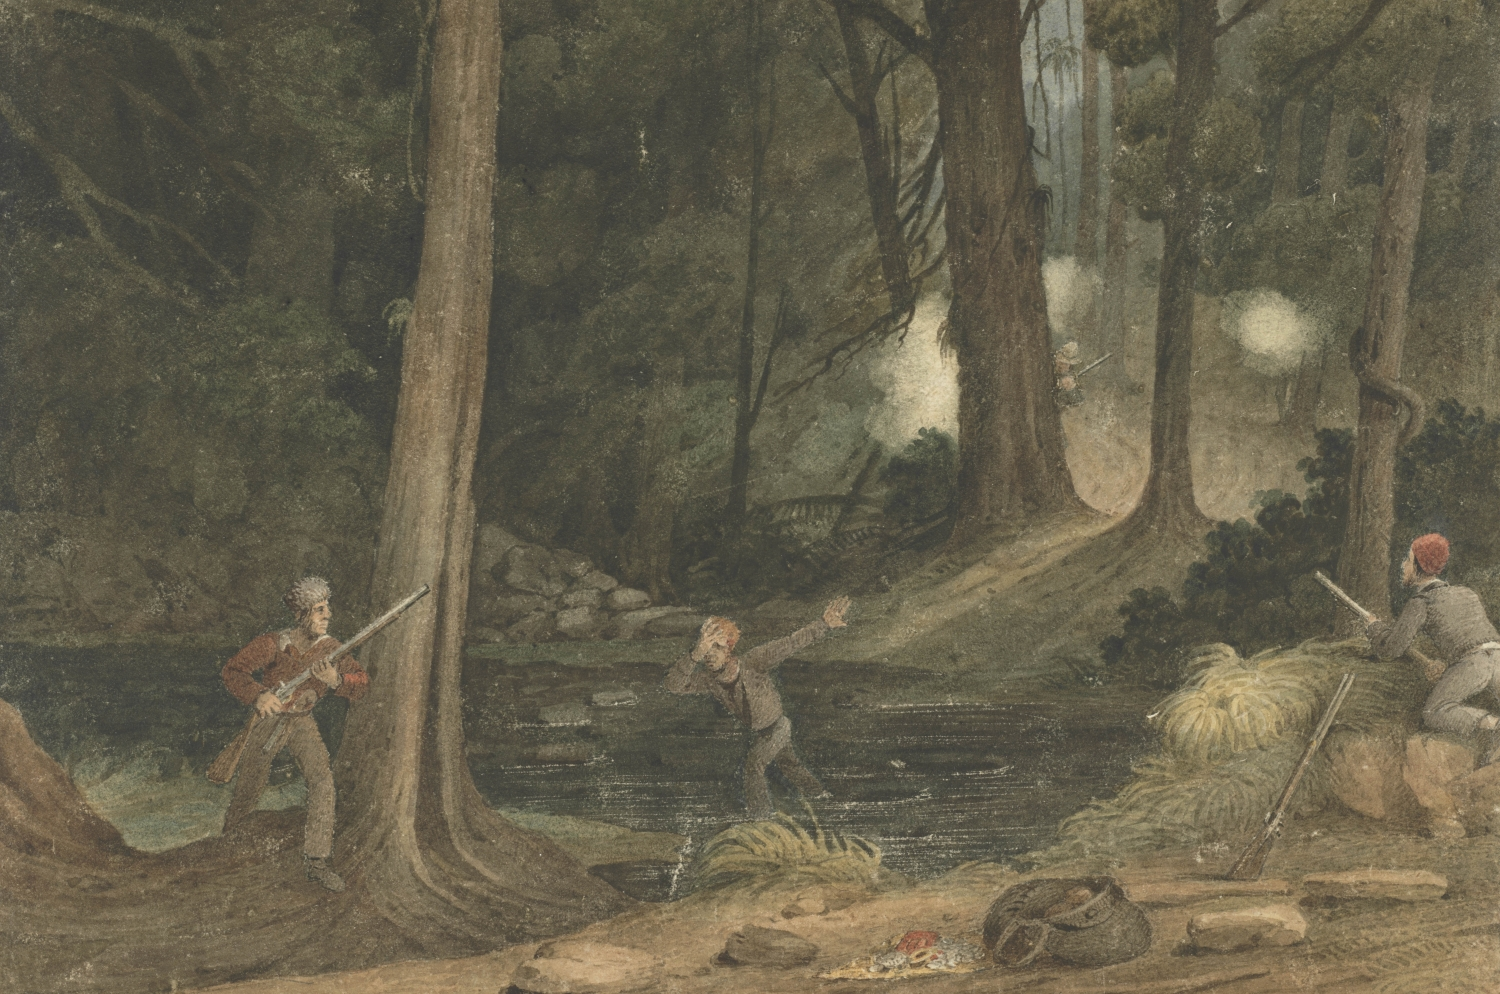 Three bushrangers appear to be startled and in battle with a group hidden in the trees. Amongst them is a large bag that looks to be fill of treasure